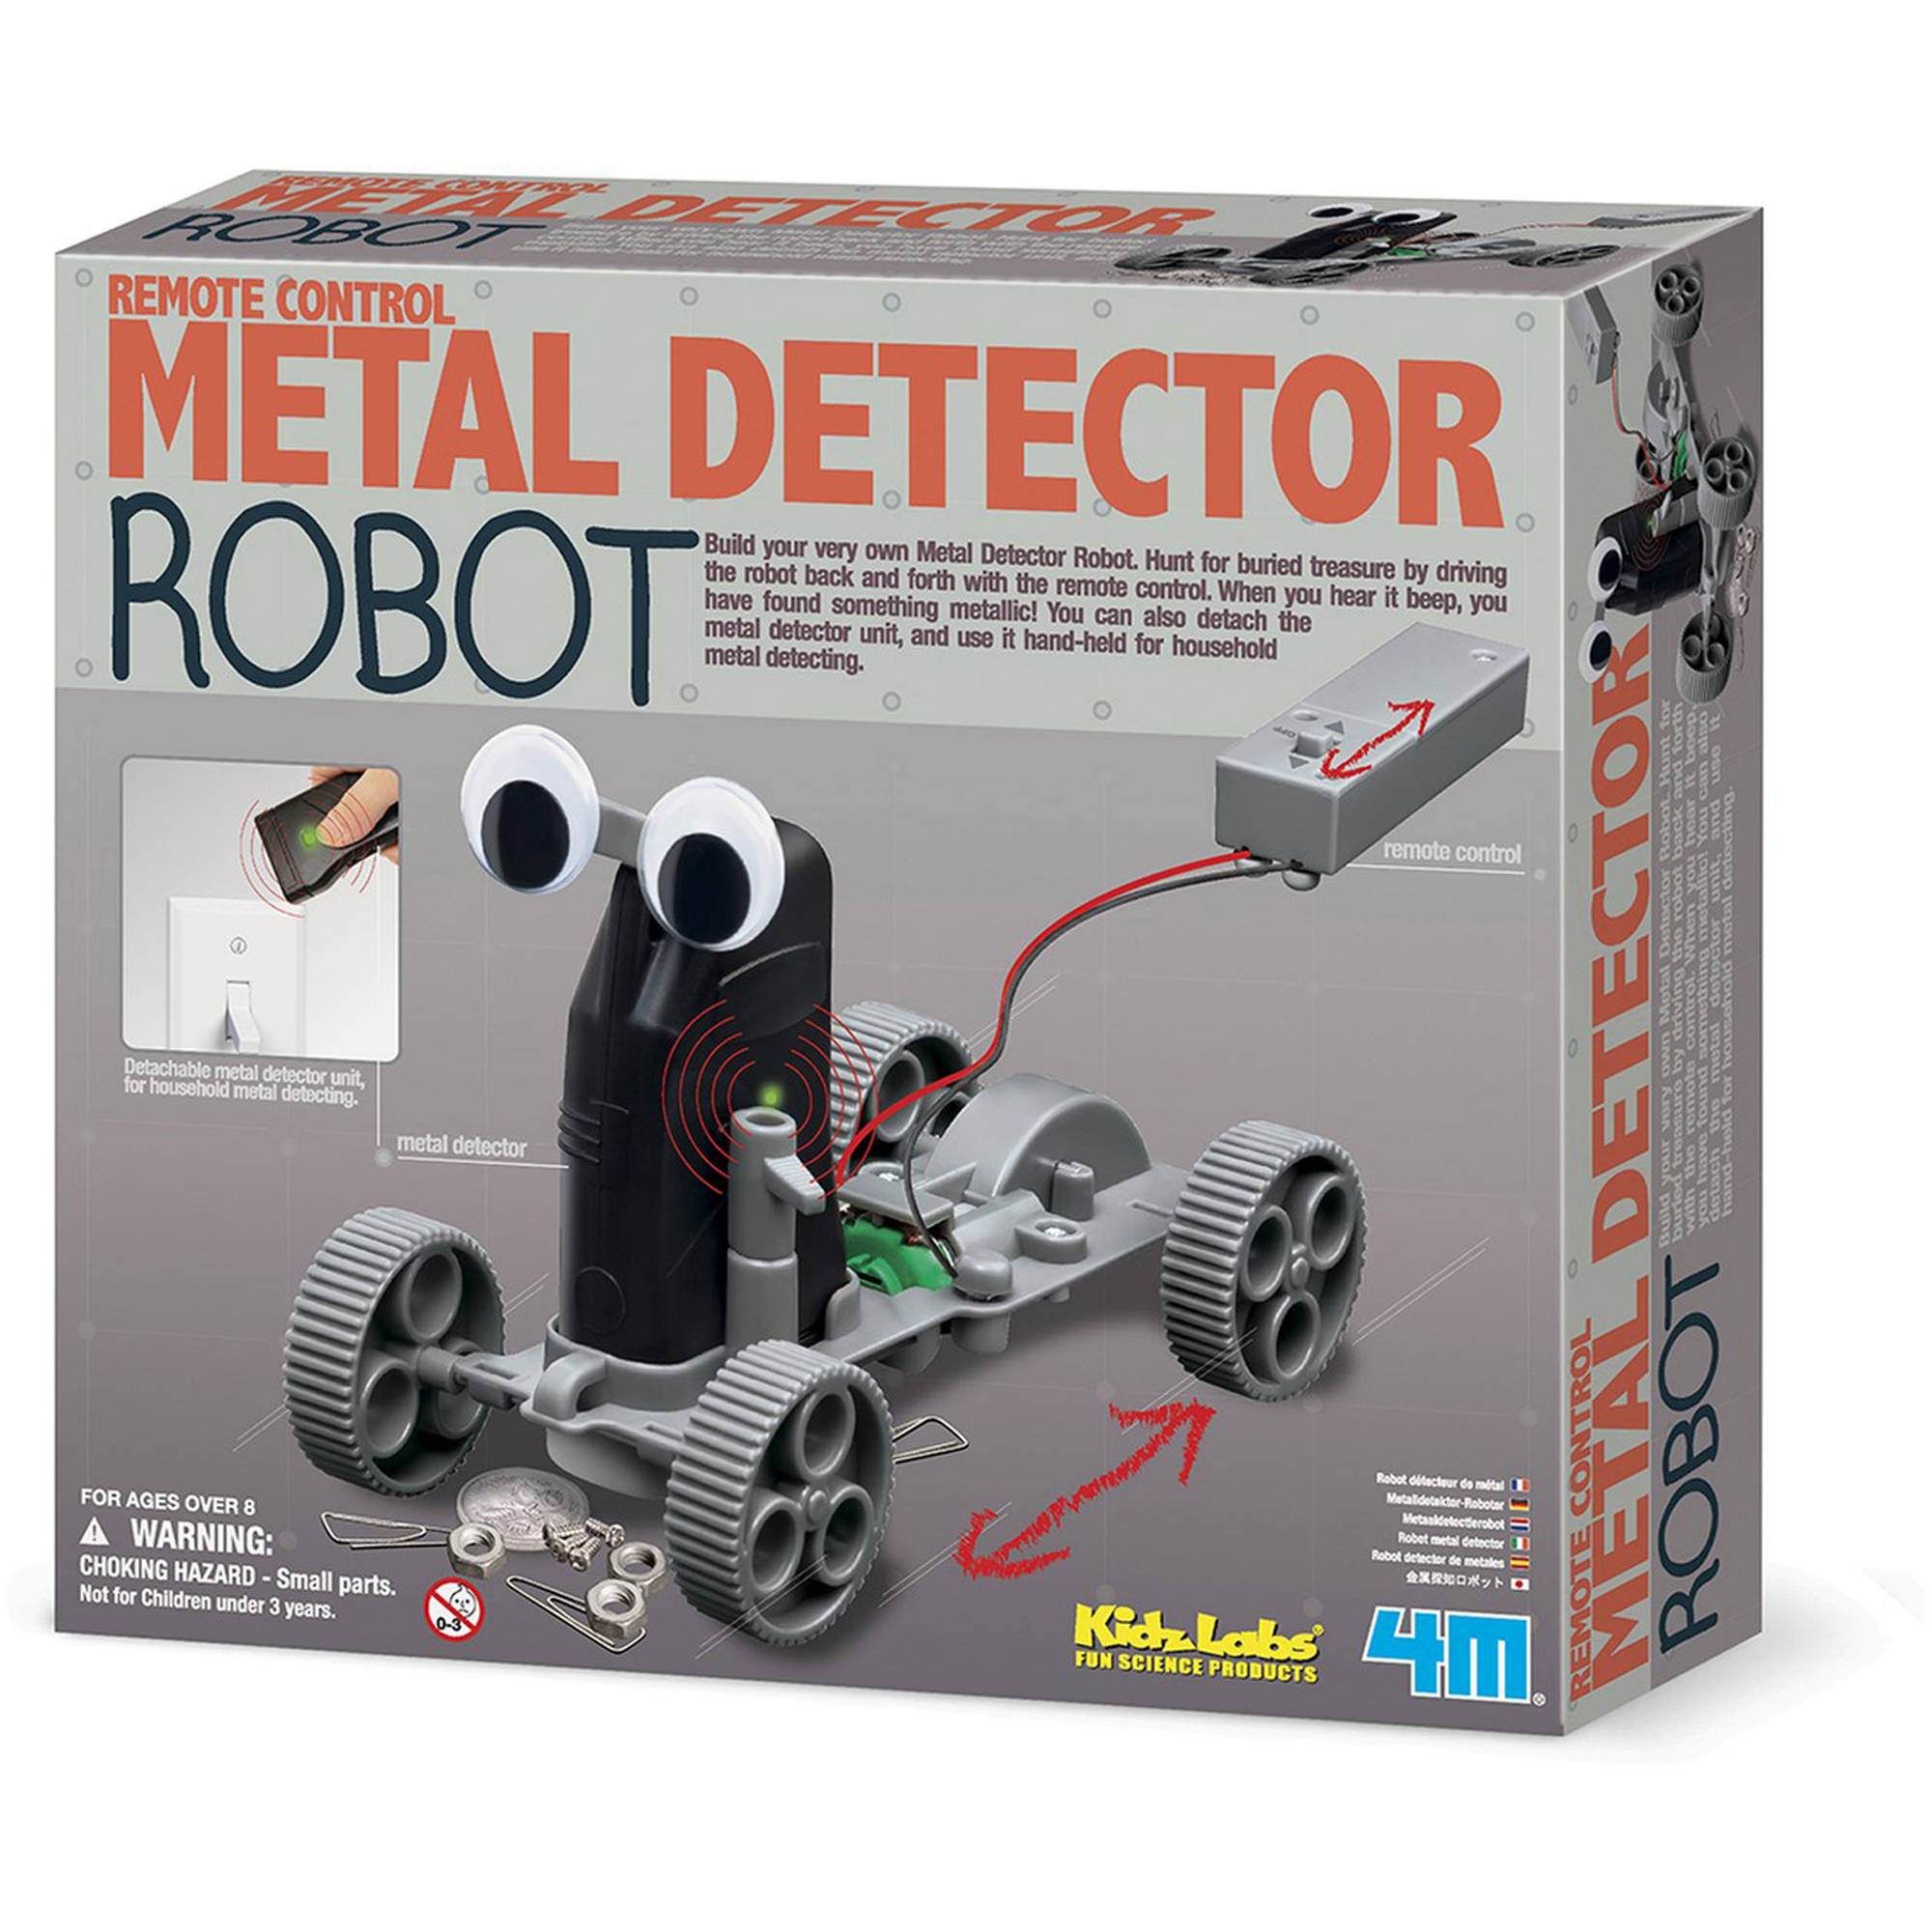 4M Kids Labs Remote Control Metal Detector Robot Kit by 4M